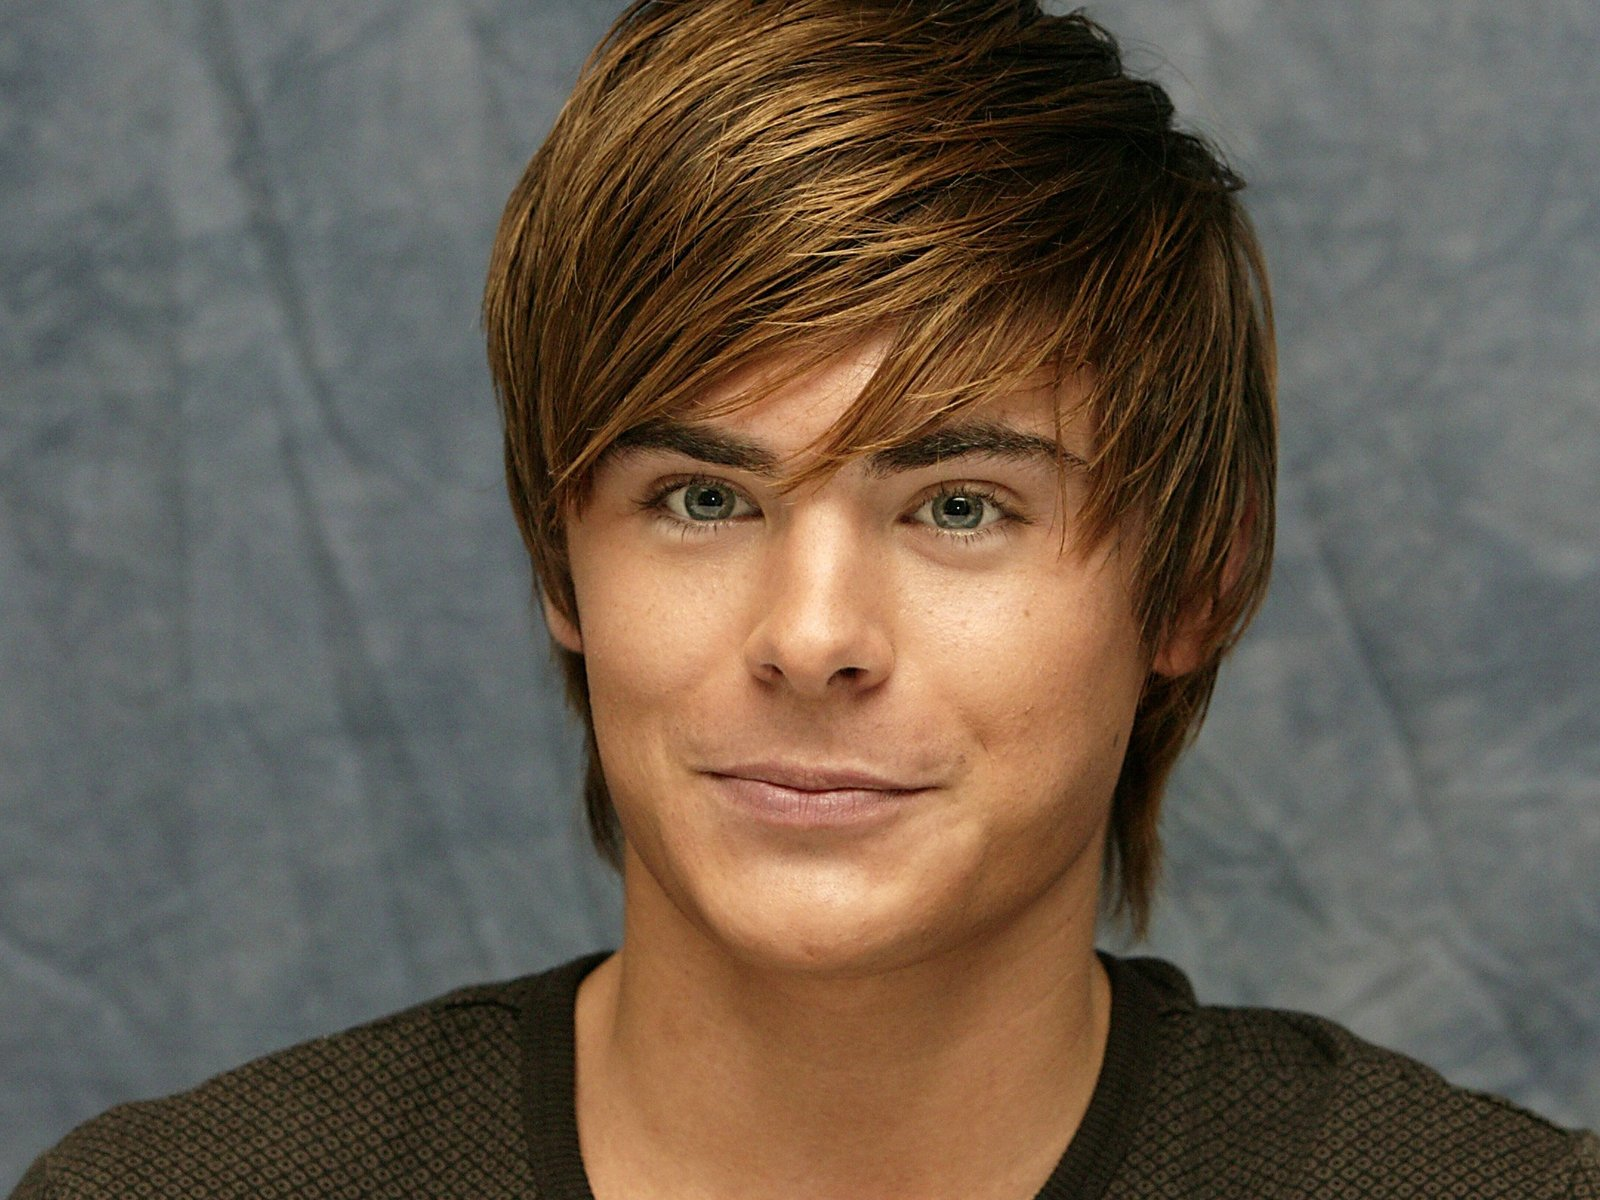 Best Boys Hairstyles And Haircuts In 2012 Hair Style Boys